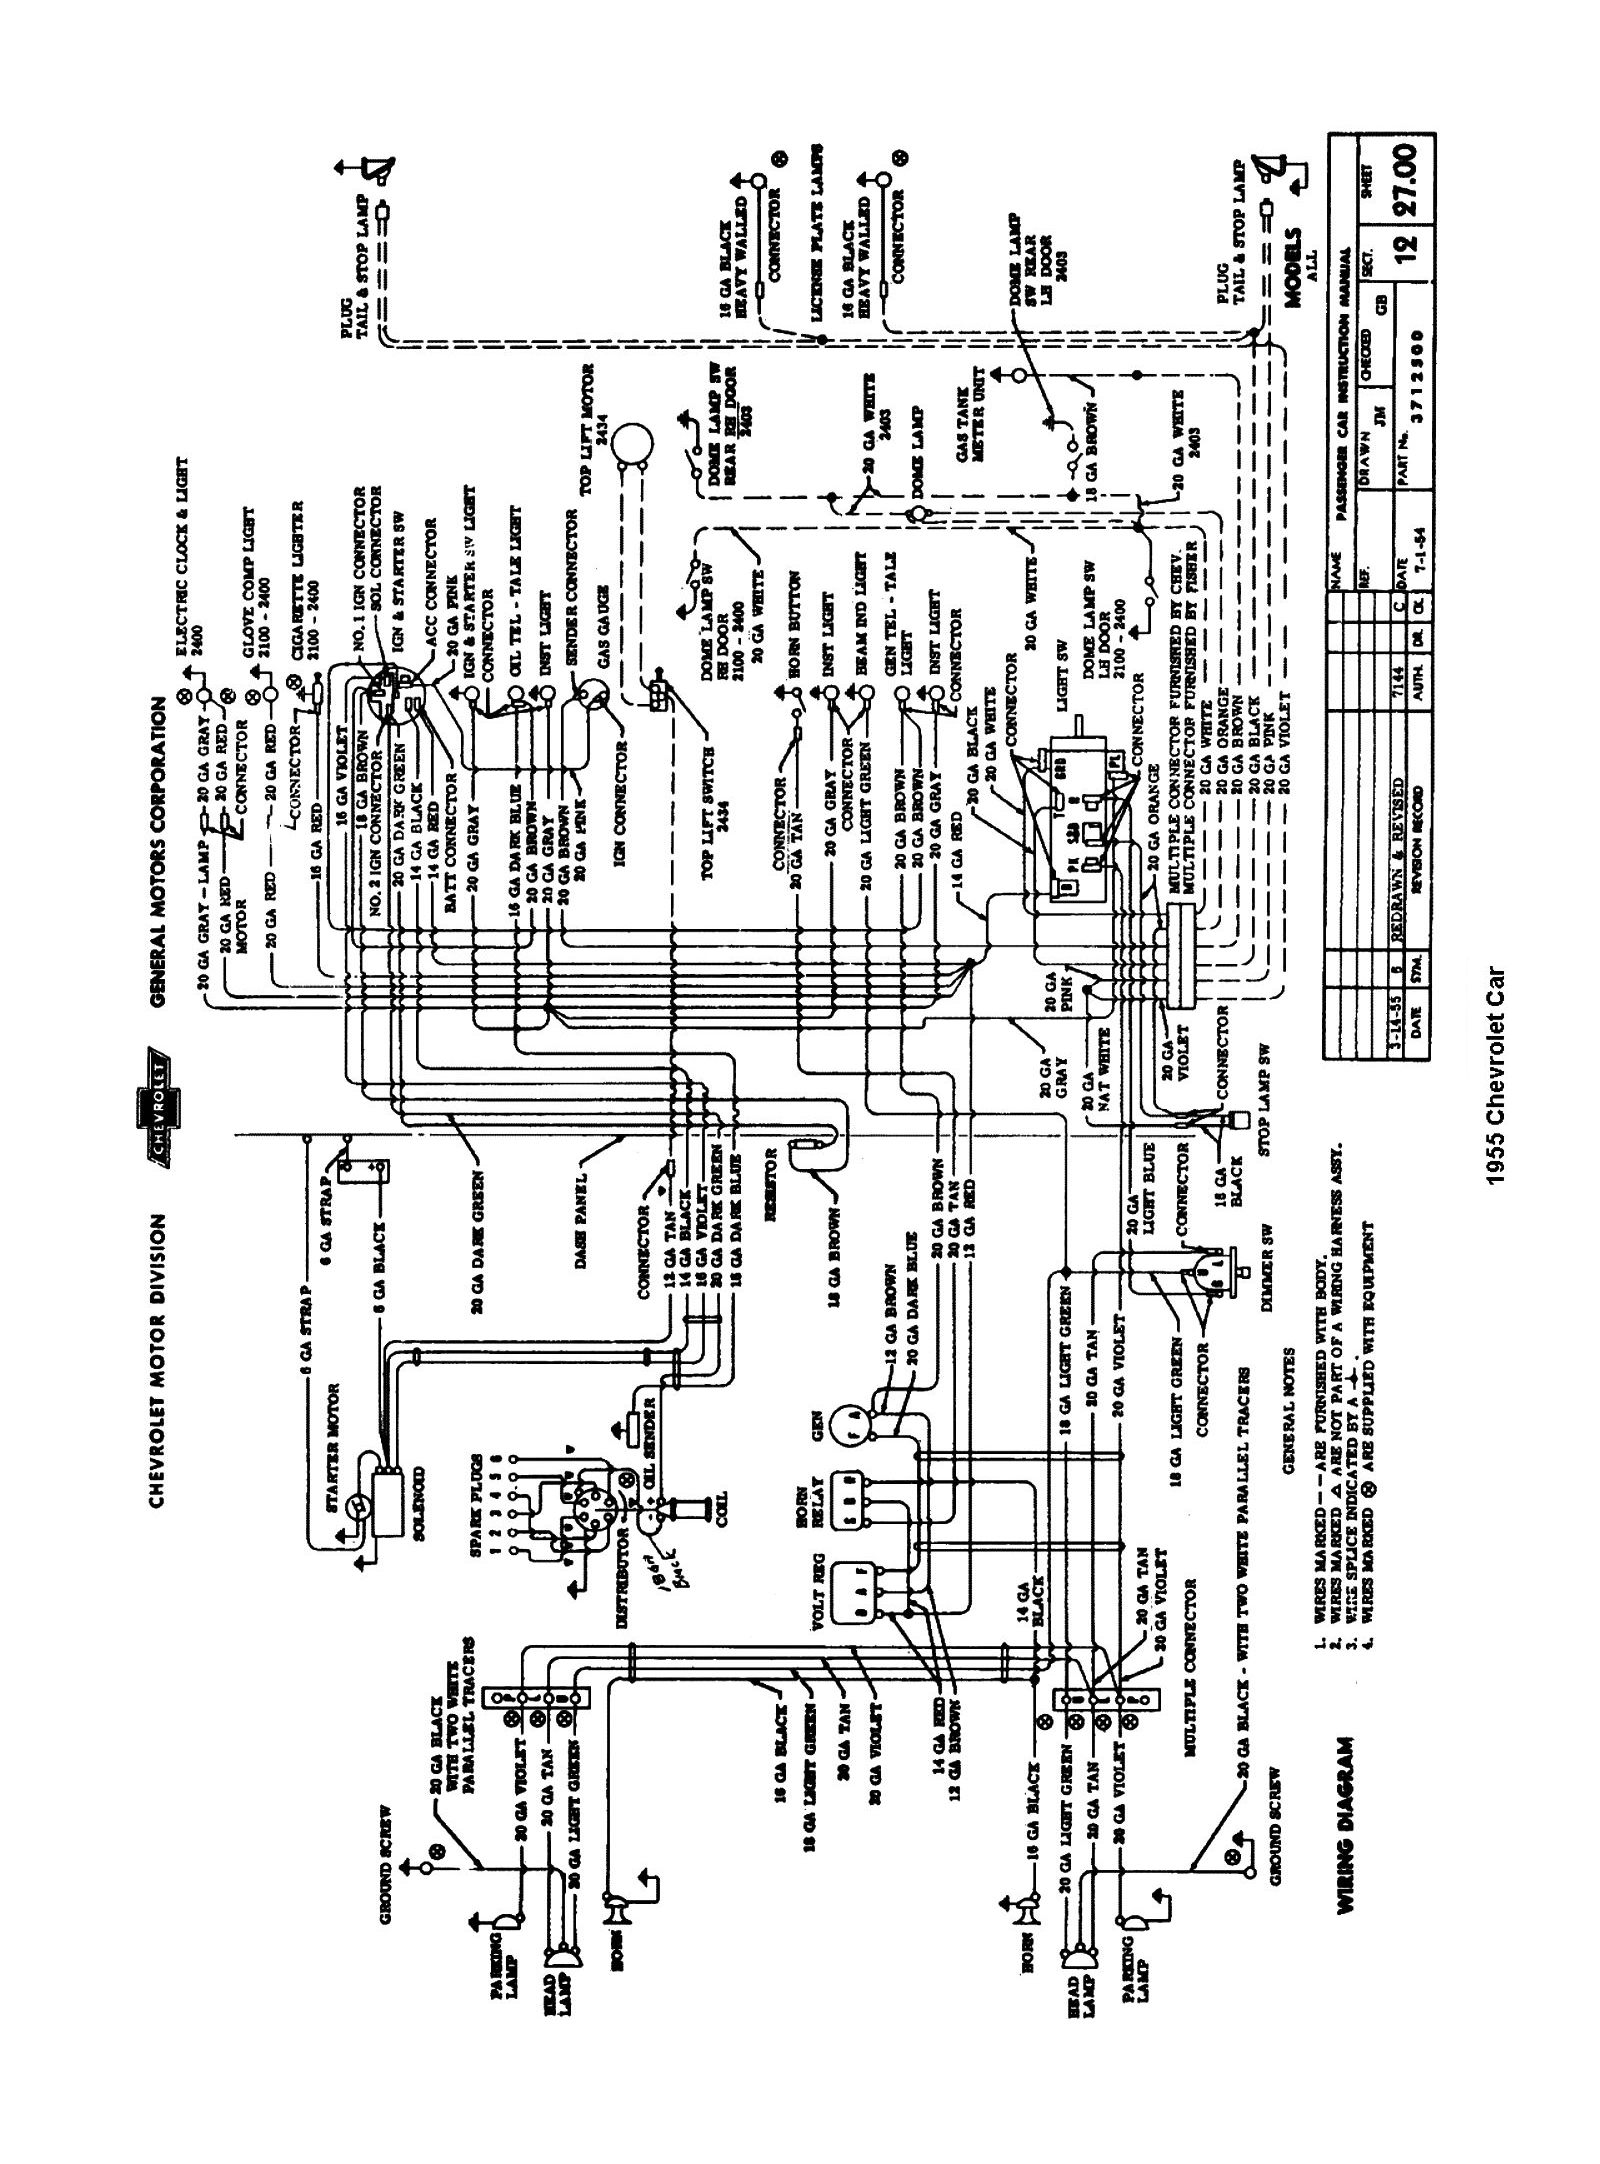 DIAGRAM] Chevrolet Chevy 1951 Car Wiring Electrical Diagram Manual FULL  Version HD Quality Diagram Manual - MOTOGPGEAR4LESS.DELI-MULTISERVICES.FRmotogpgear4less.deli-multiservices.fr